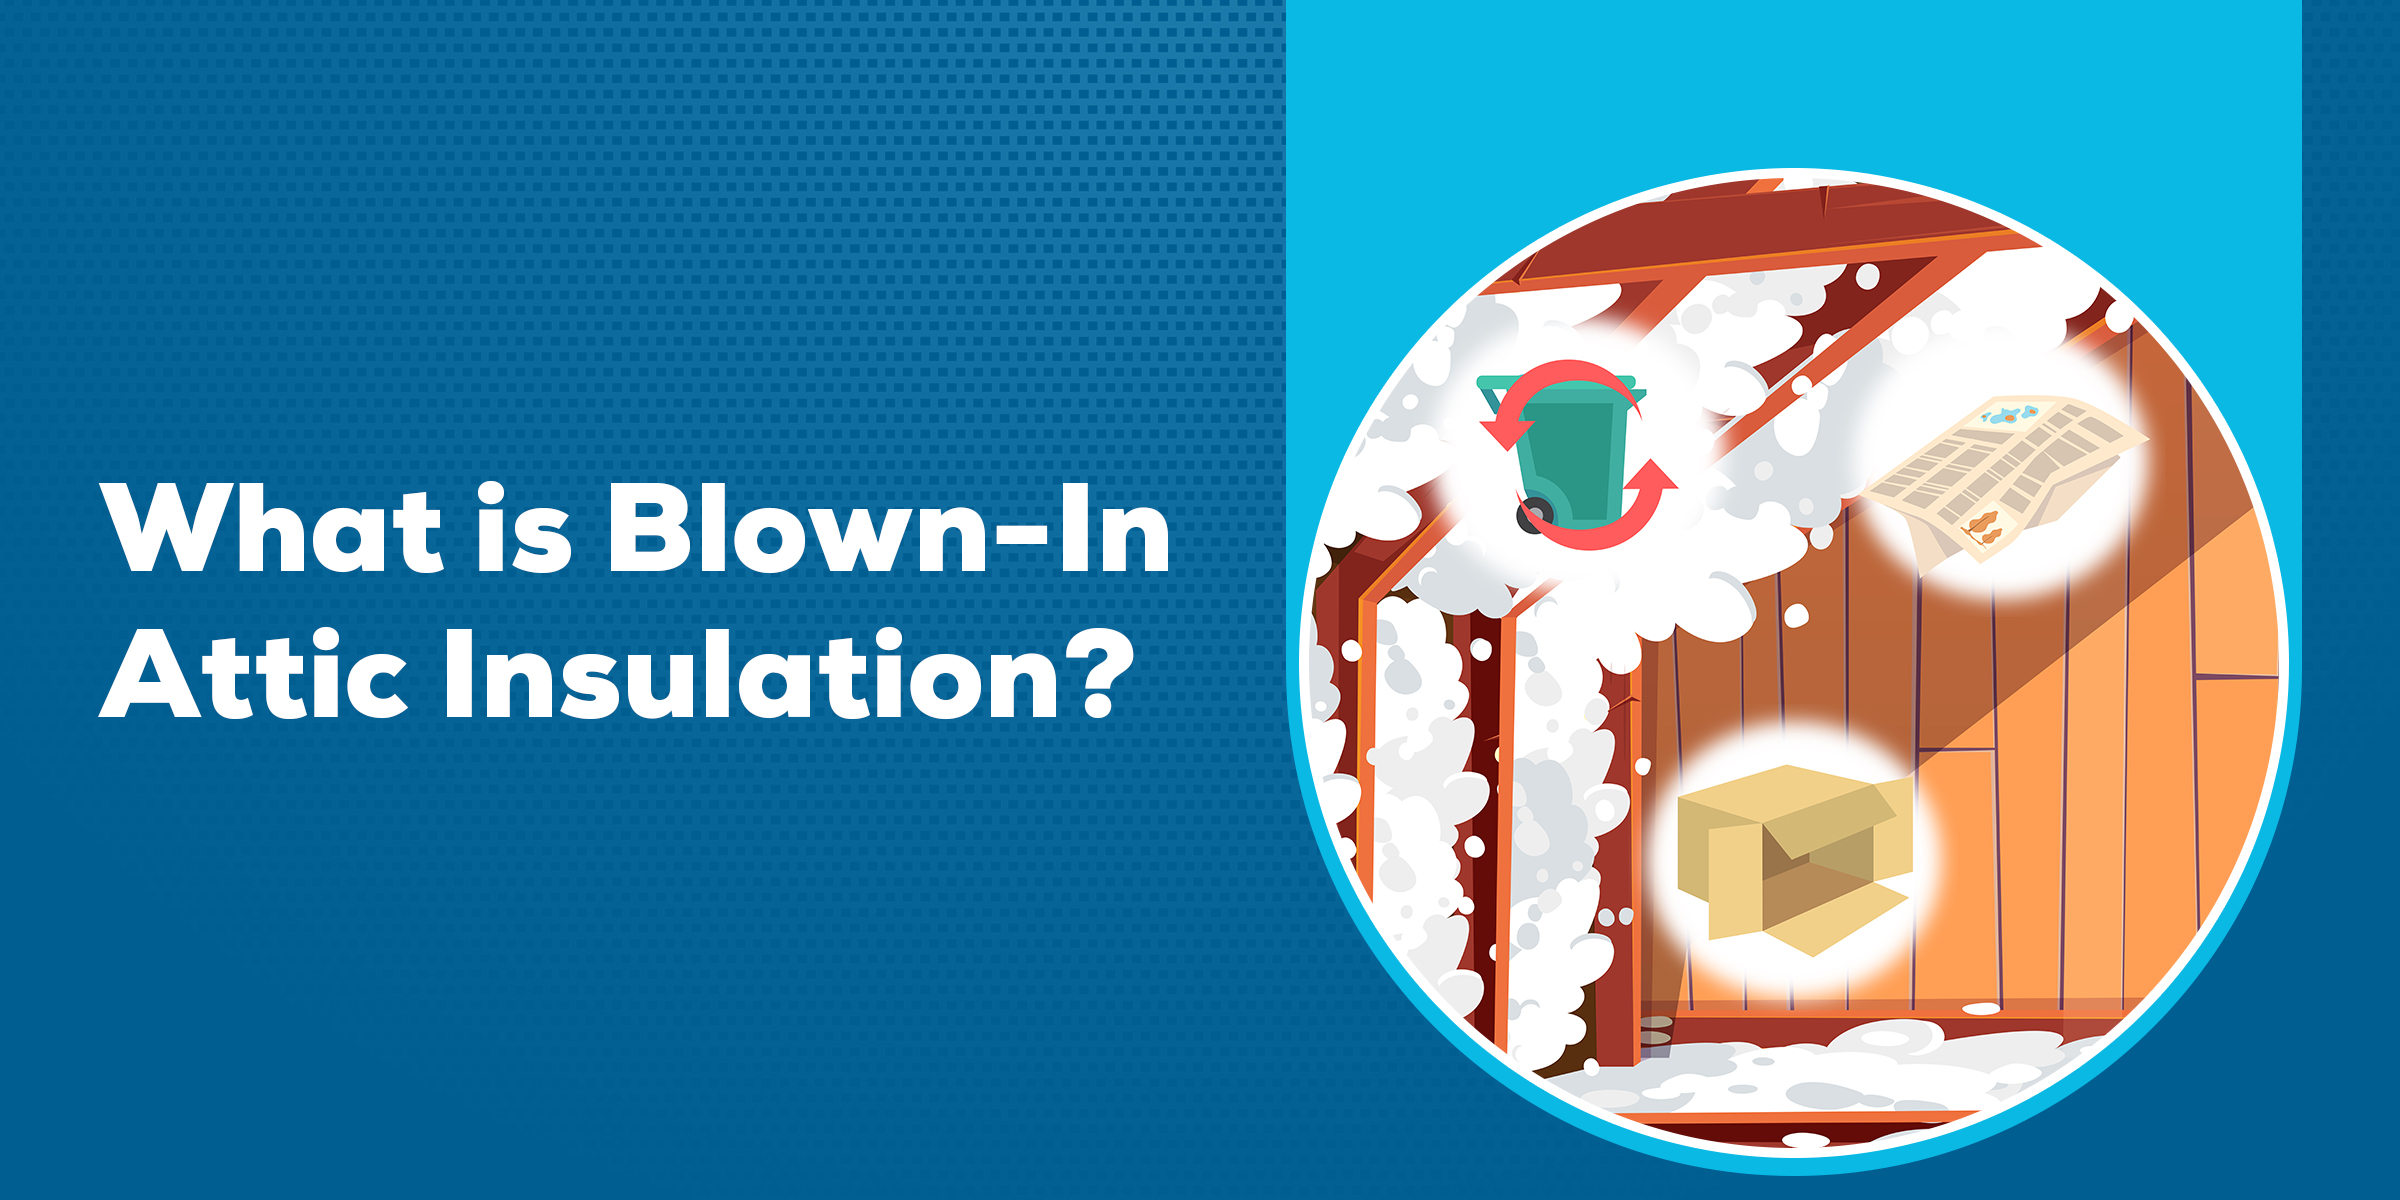 What Is Blown In Attic Insulation?